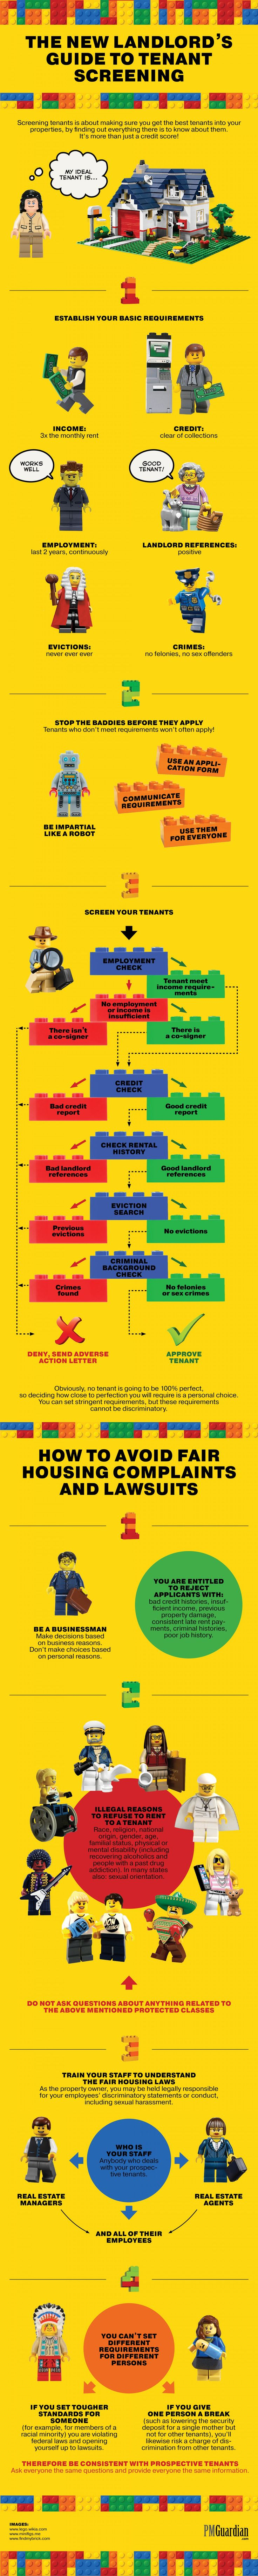 The New #Landlord's Guide to #TenantScreening #Infographic. #Screening #tenants is about making sure you get the best #tenants into your #properties, by finding out everything there is to know about them. It's more than just a credit score! - See more at: http://visual.ly/users/anastasiyakrast